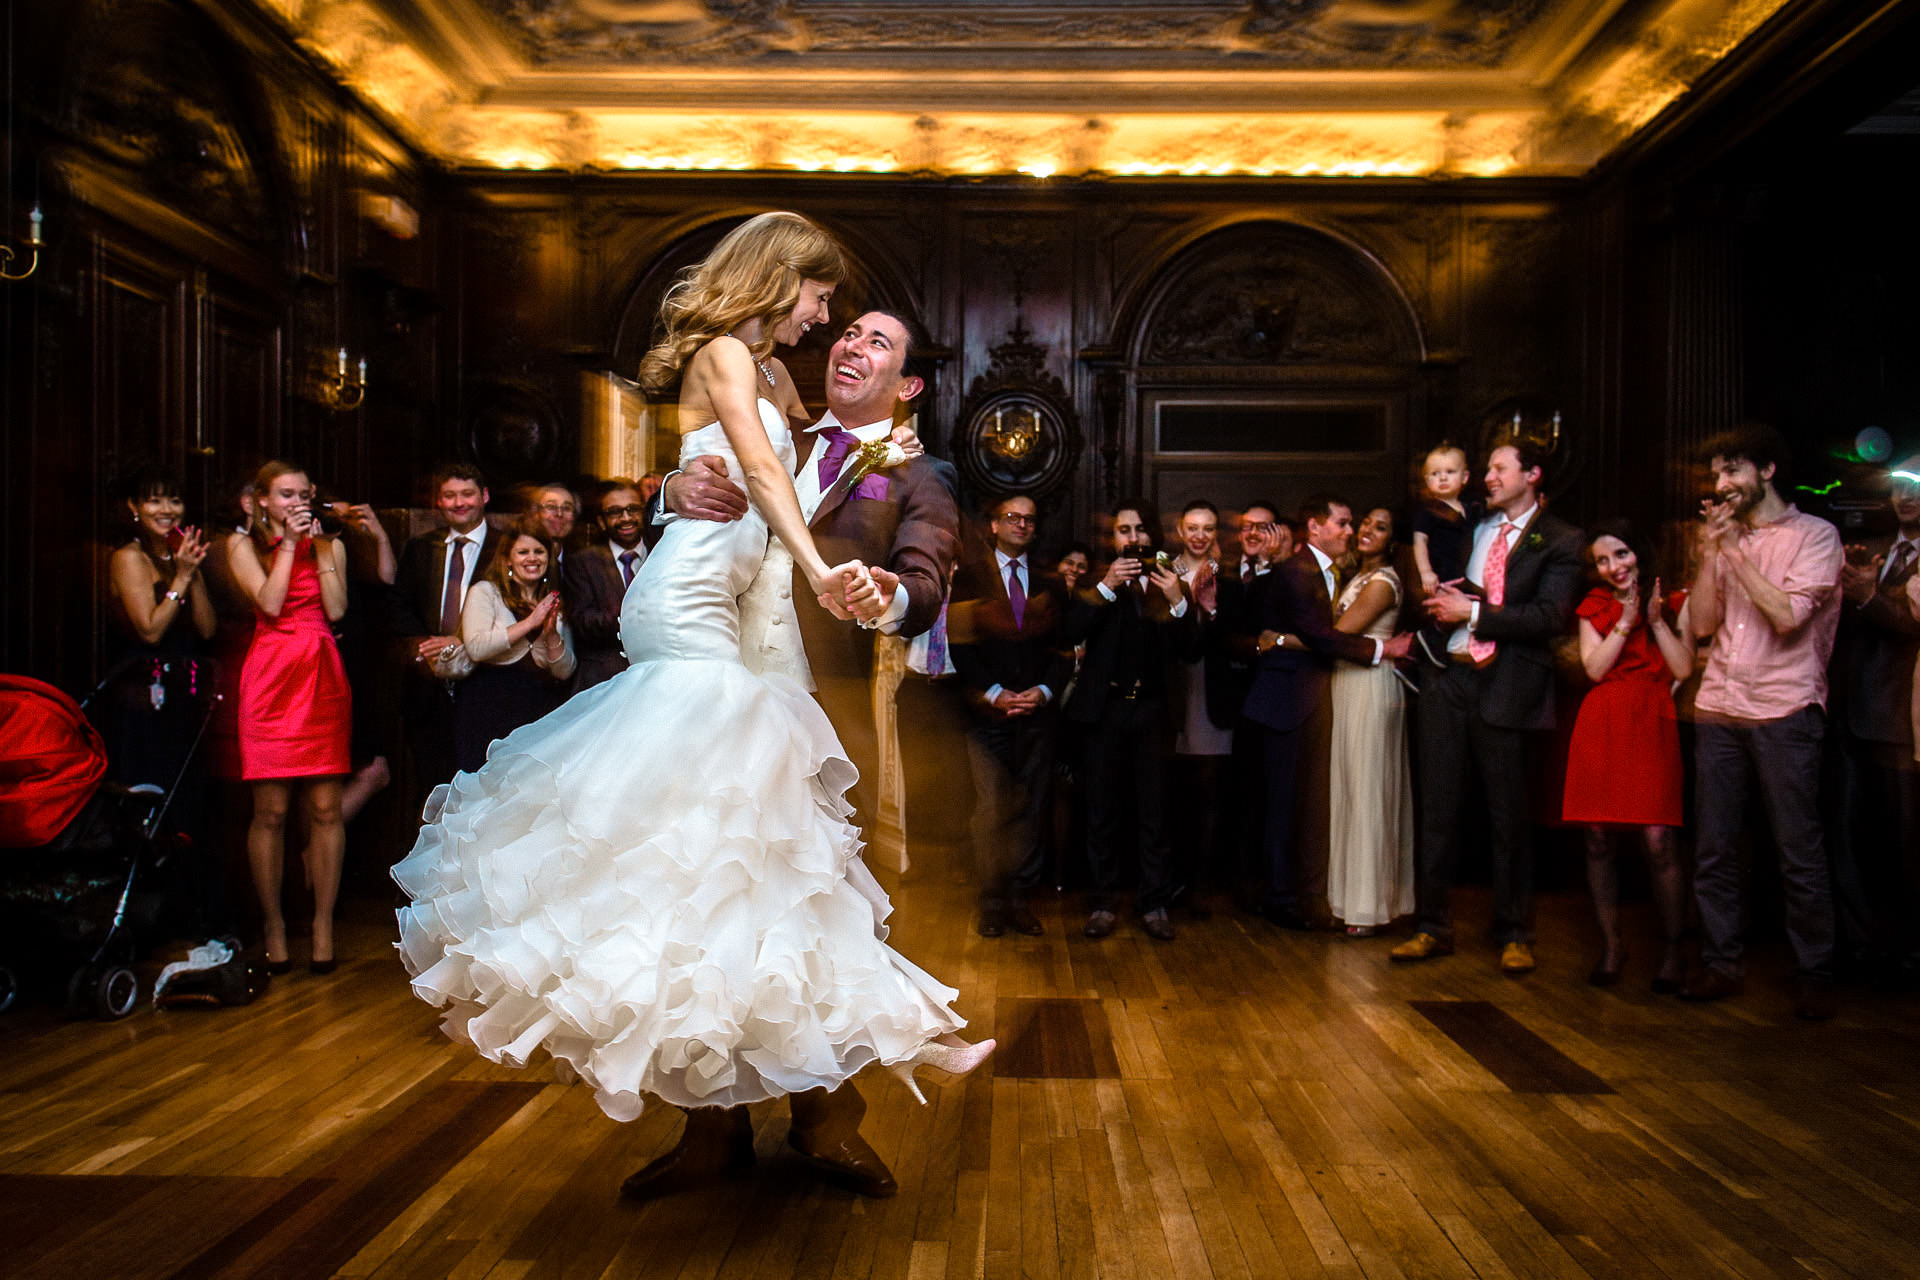 happy couple dancing their first dance at their wedding in central London venue